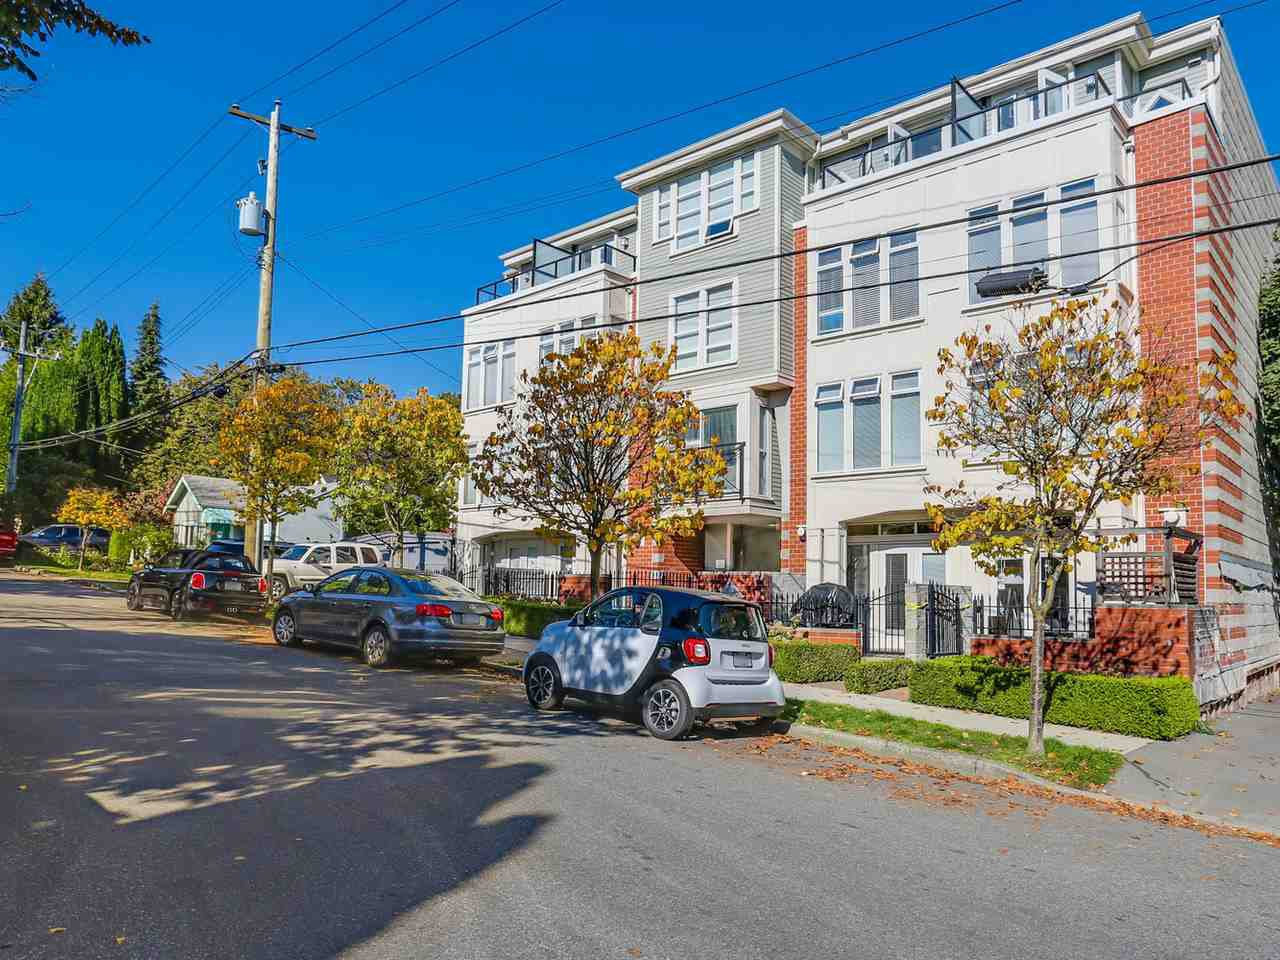 Main Photo: 203 3637 W 17TH AVENUE in Vancouver: Dunbar Condo for sale (Vancouver West)  : MLS®# R2150087